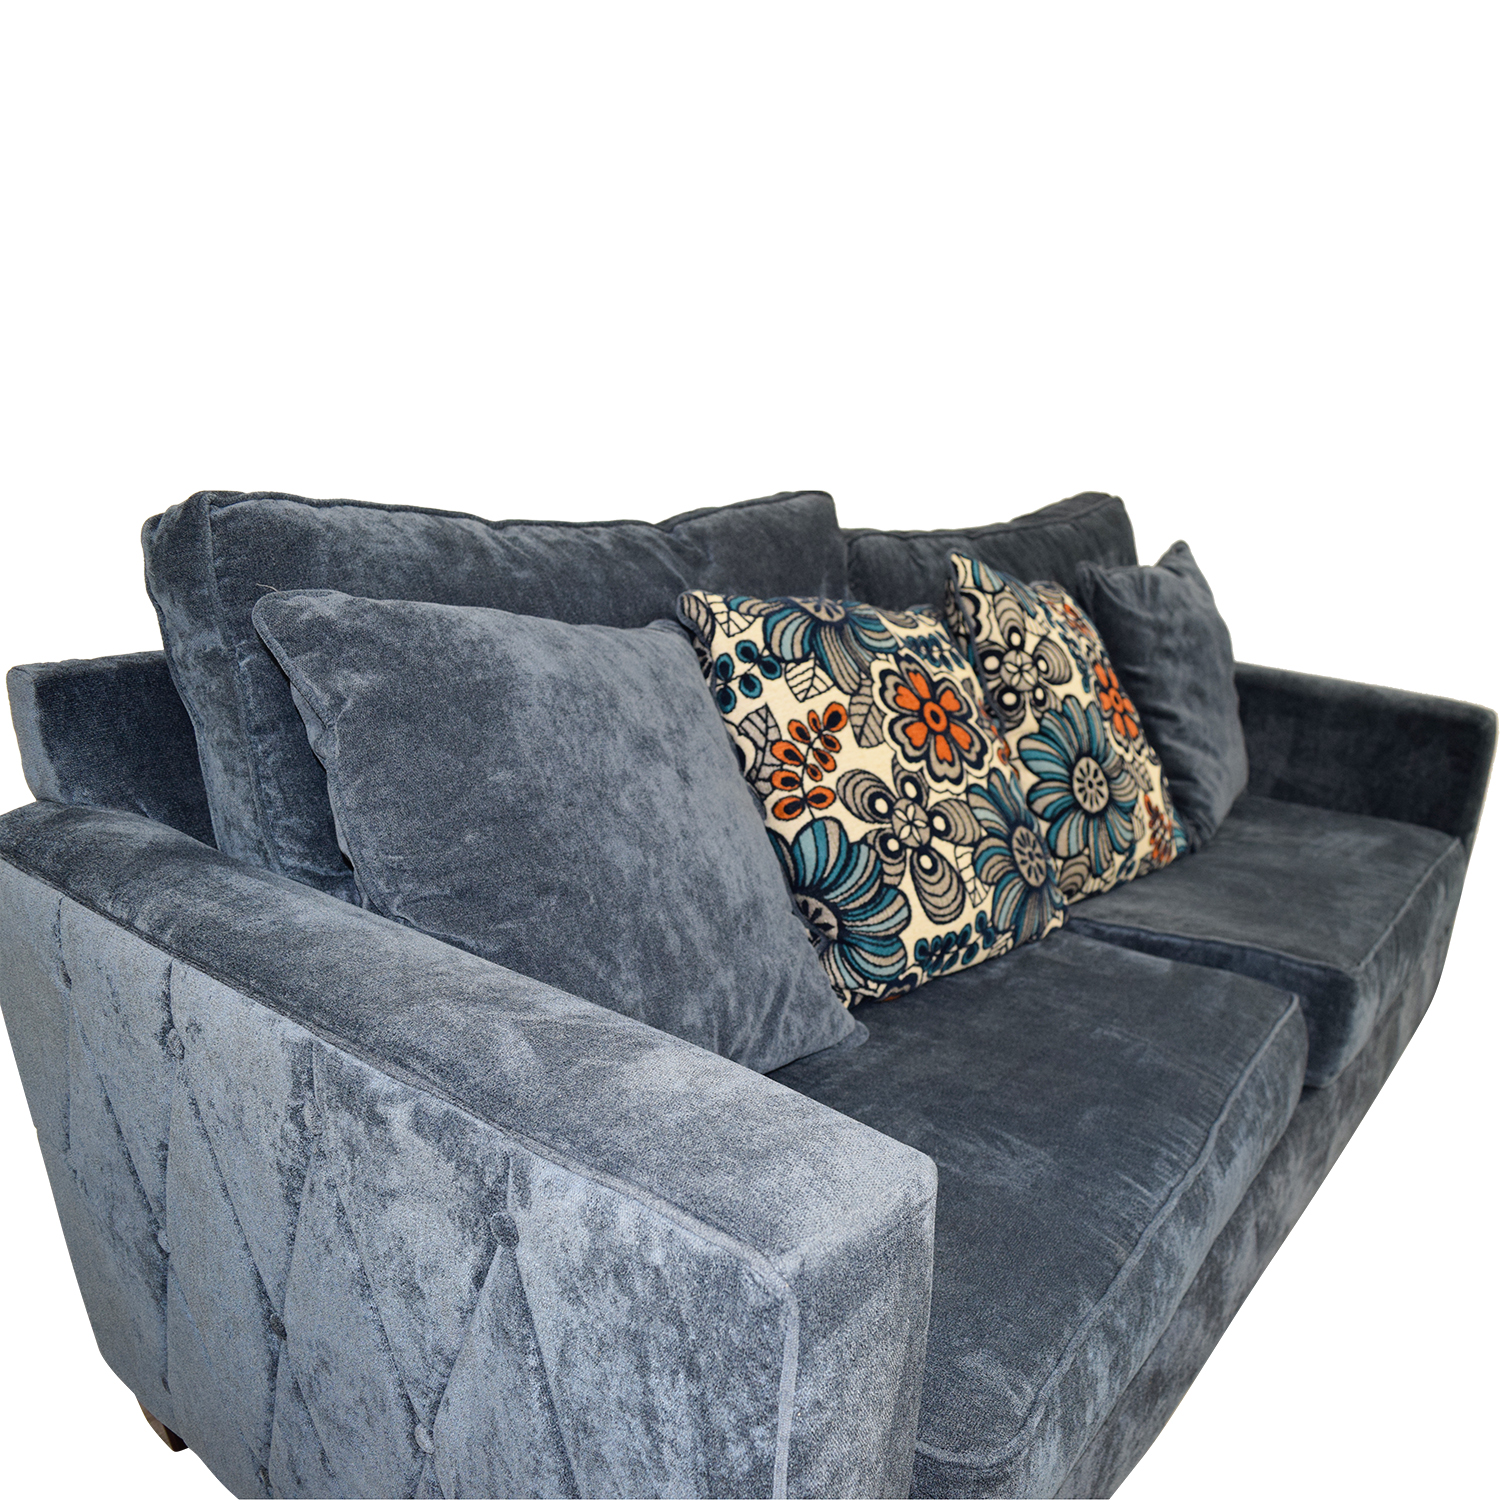 43 Off Bob S Furniture Bob S Furniture Melanie Navy Nailhead Sofa Sofas